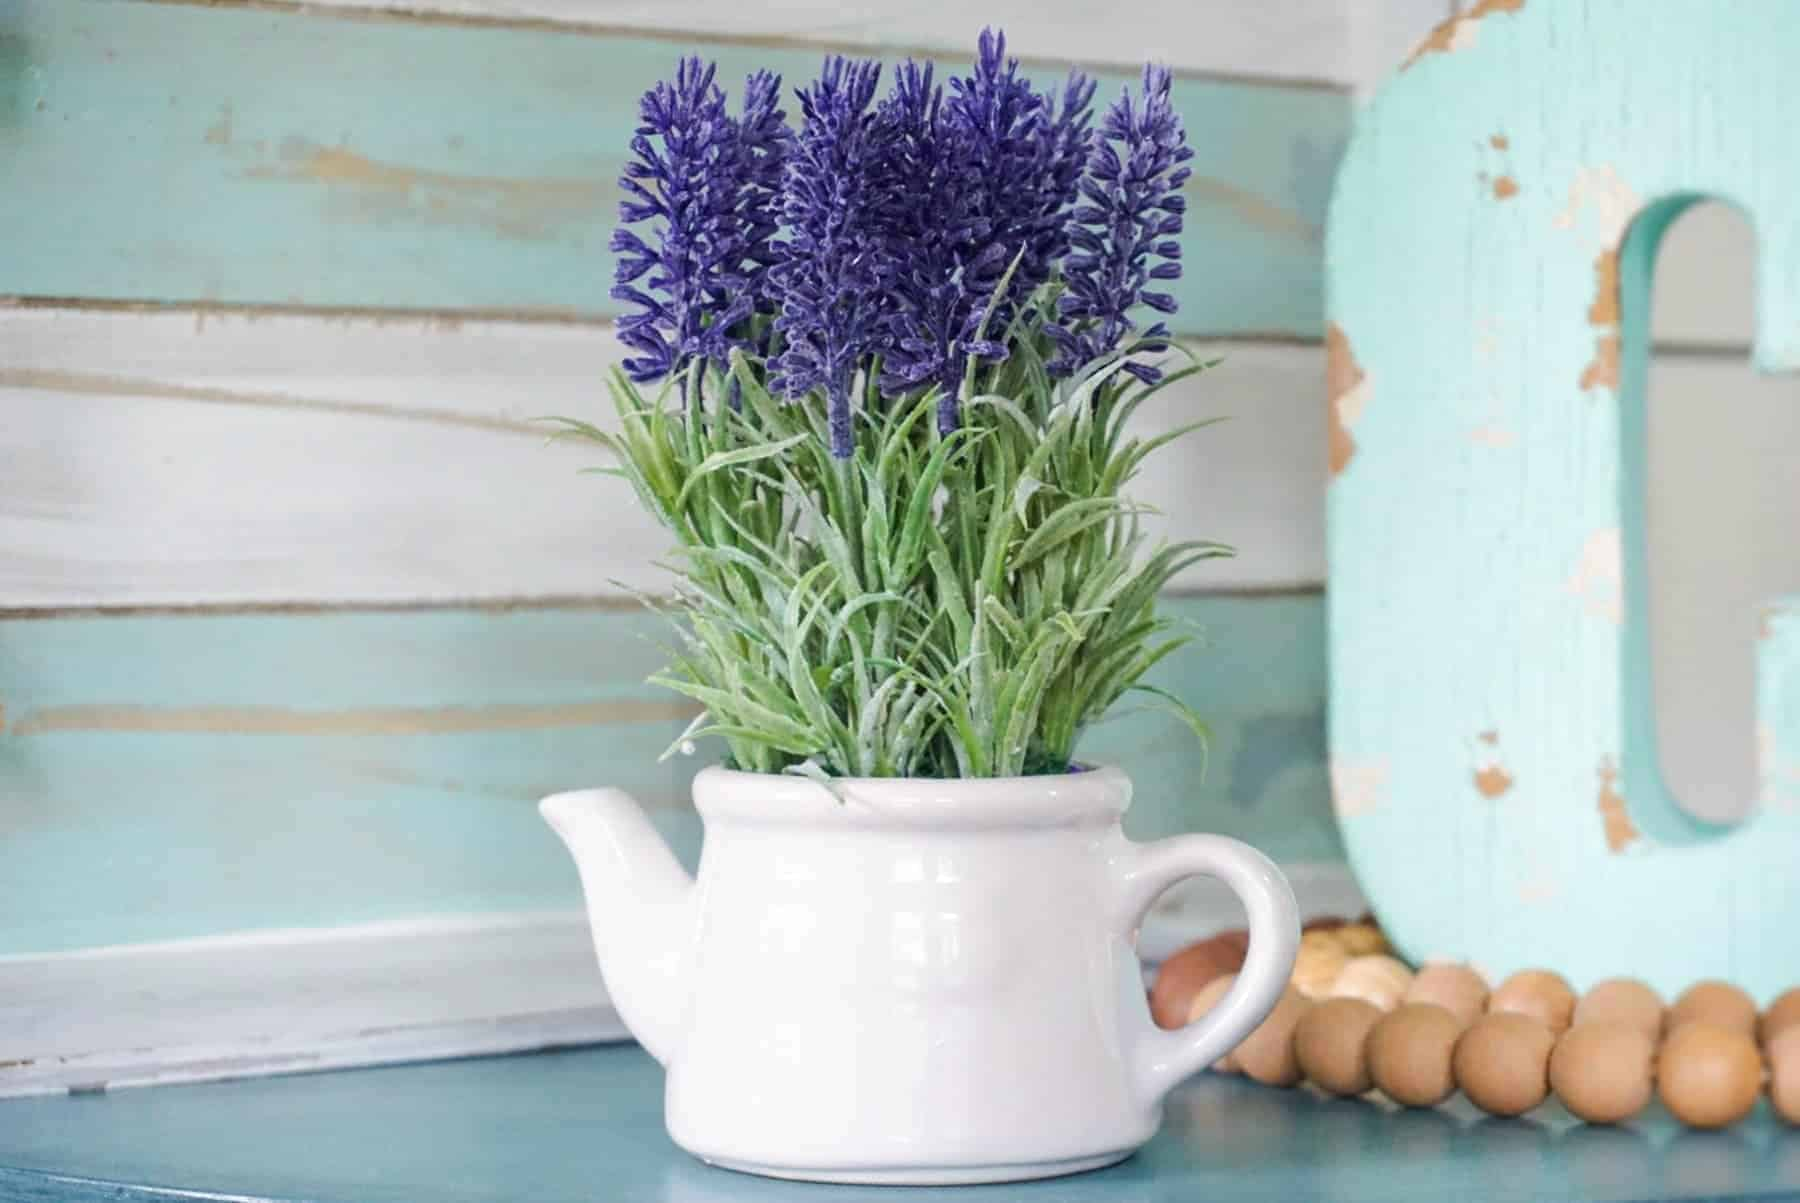 Lavender Flowers In A White Tin Pitcher On The Table